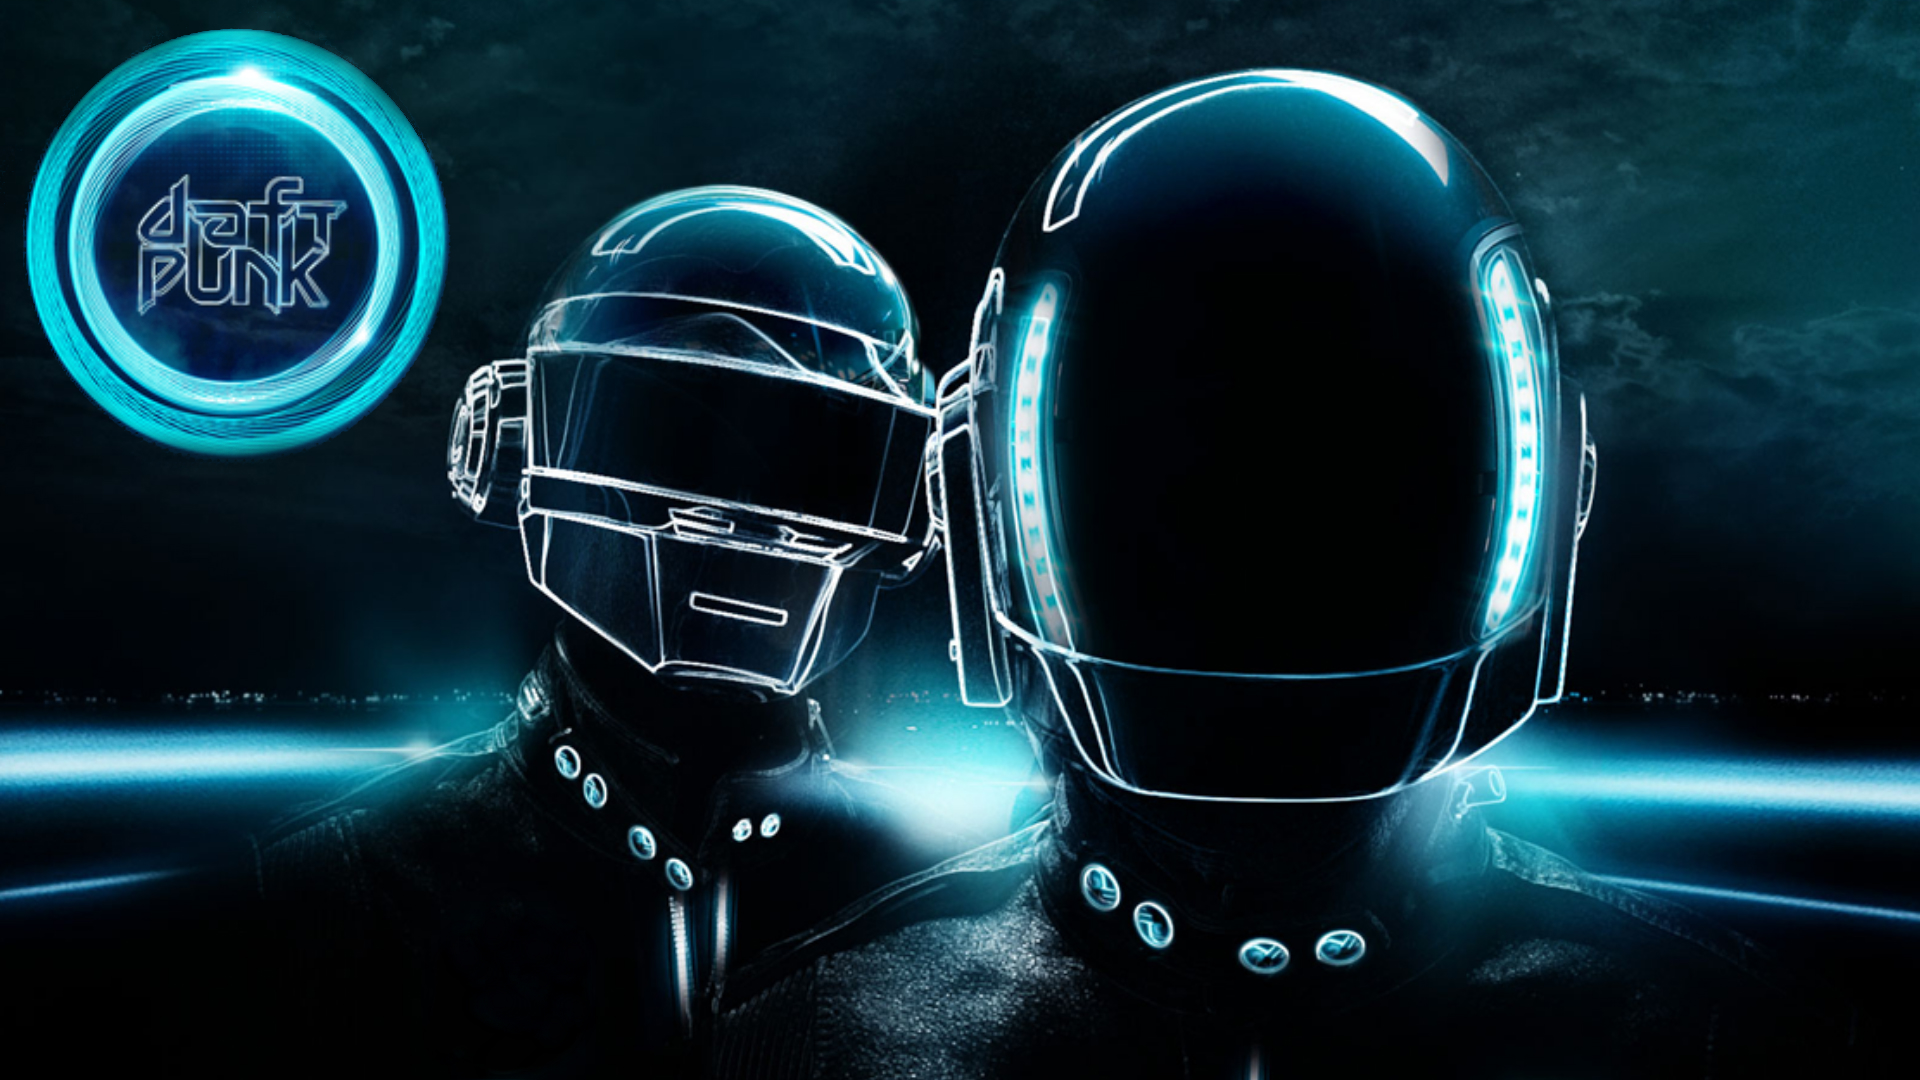 Free download The Best Daft Punk Wallpapers [1920x1080 ...